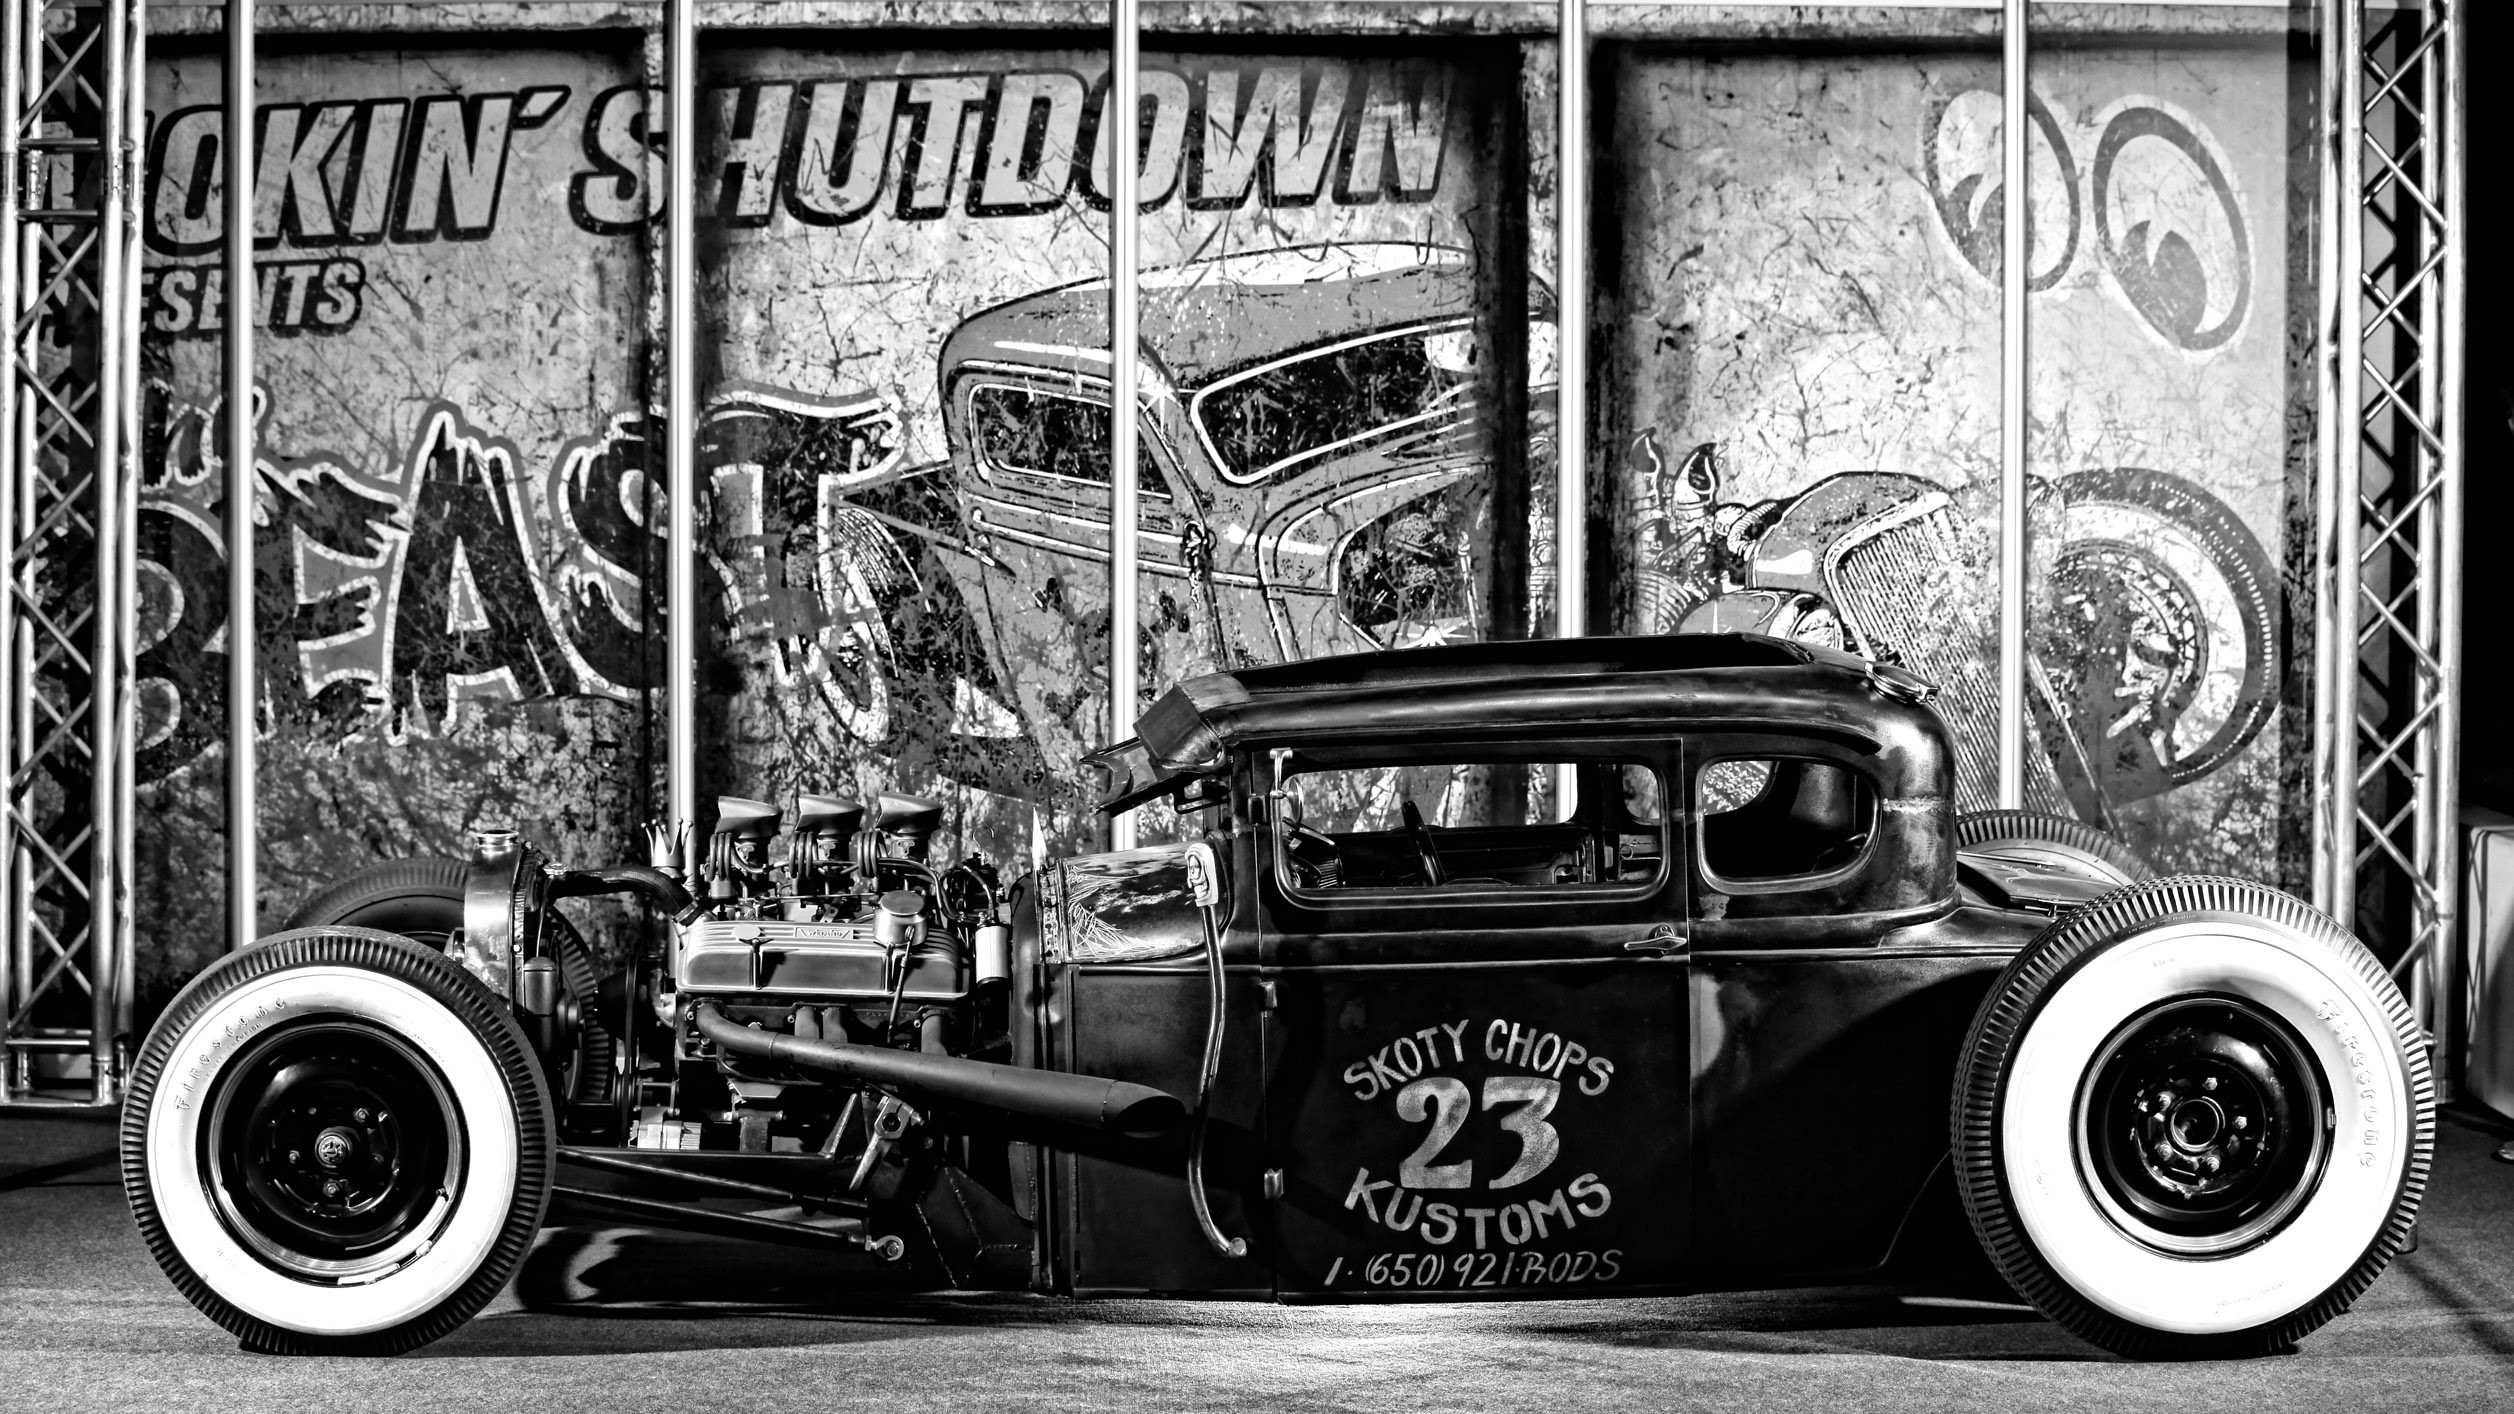 2514x1414 1930 Ford Five Model A, Smokin' Shutdown's Hot Rod Sonderausstellung –  Essen Motorshow